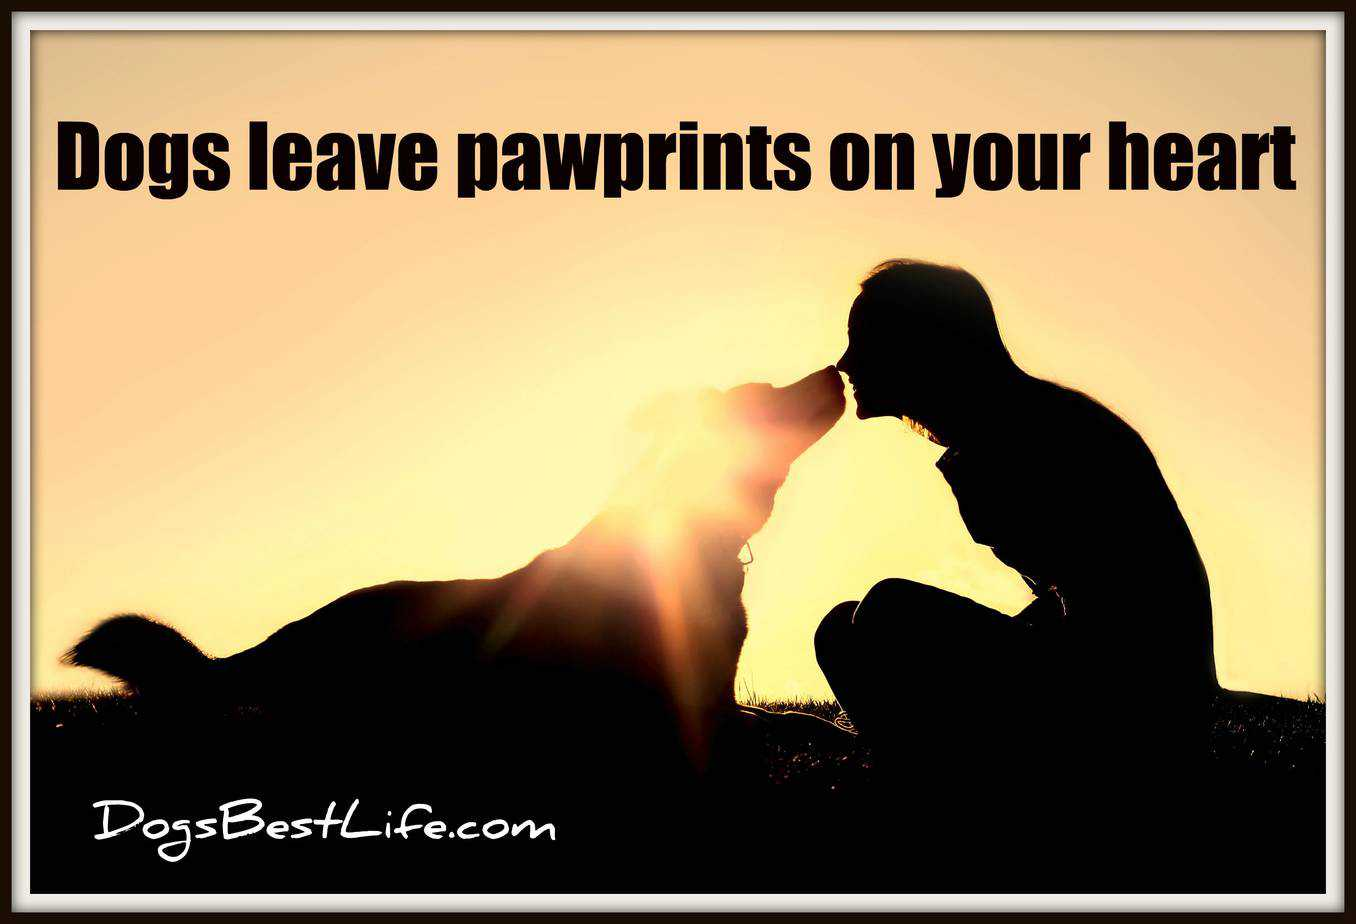 dogs leave pawprints on your heart